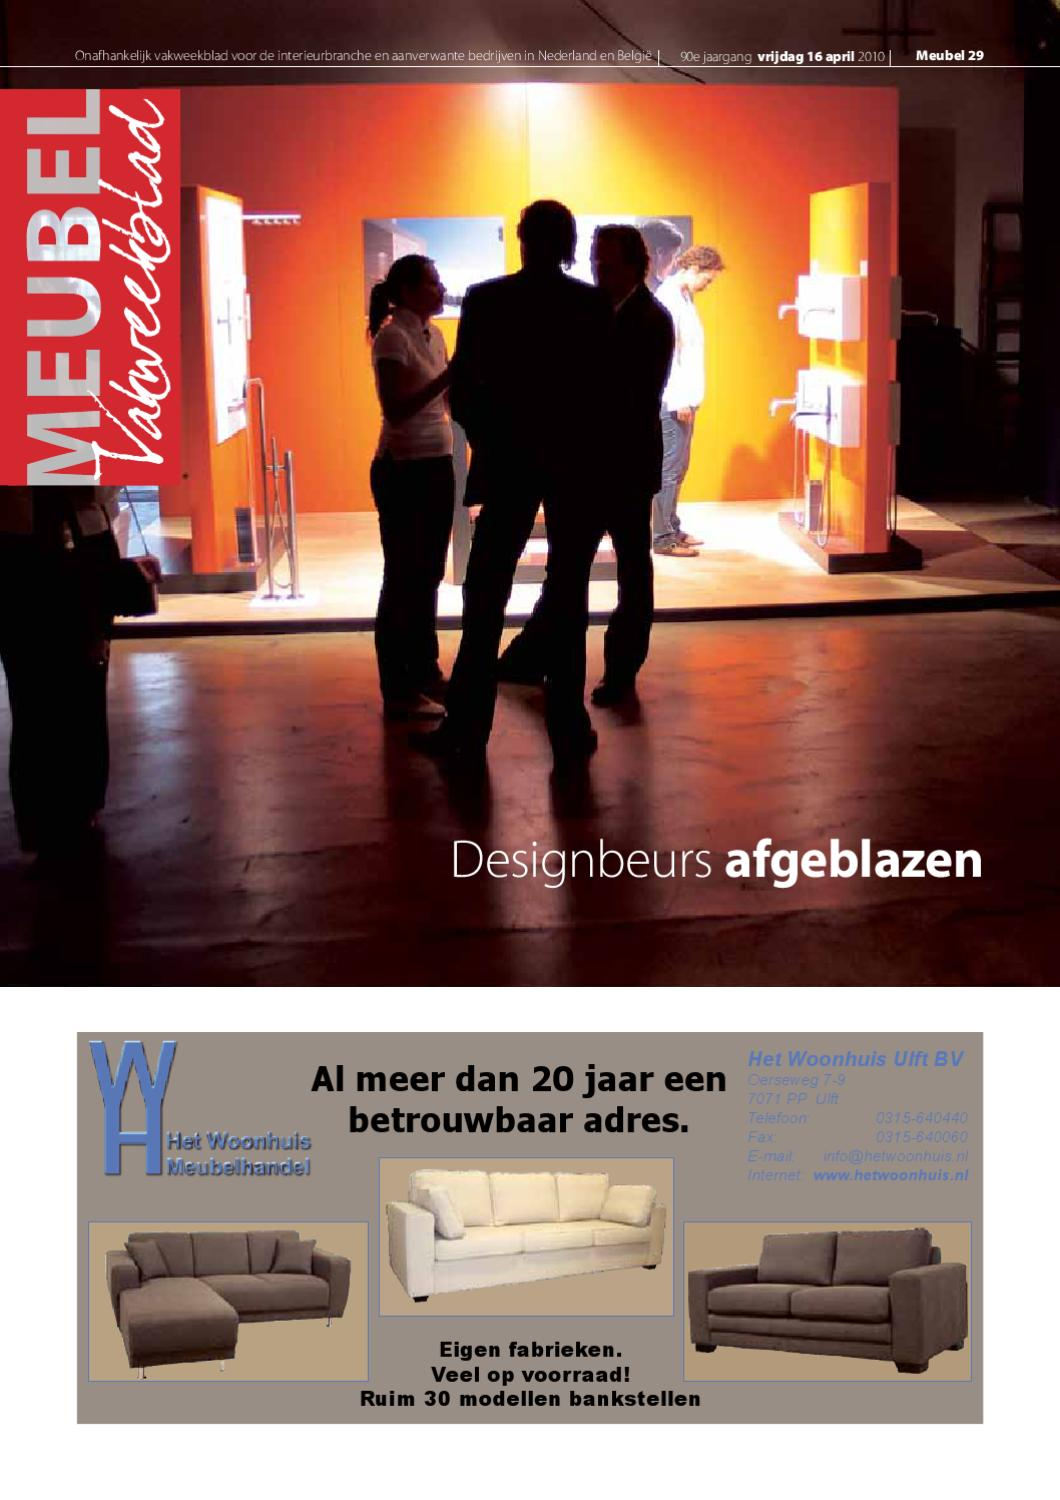 Meubel 29 16 04 10low by uitgeverij lakerveld bv   issuu